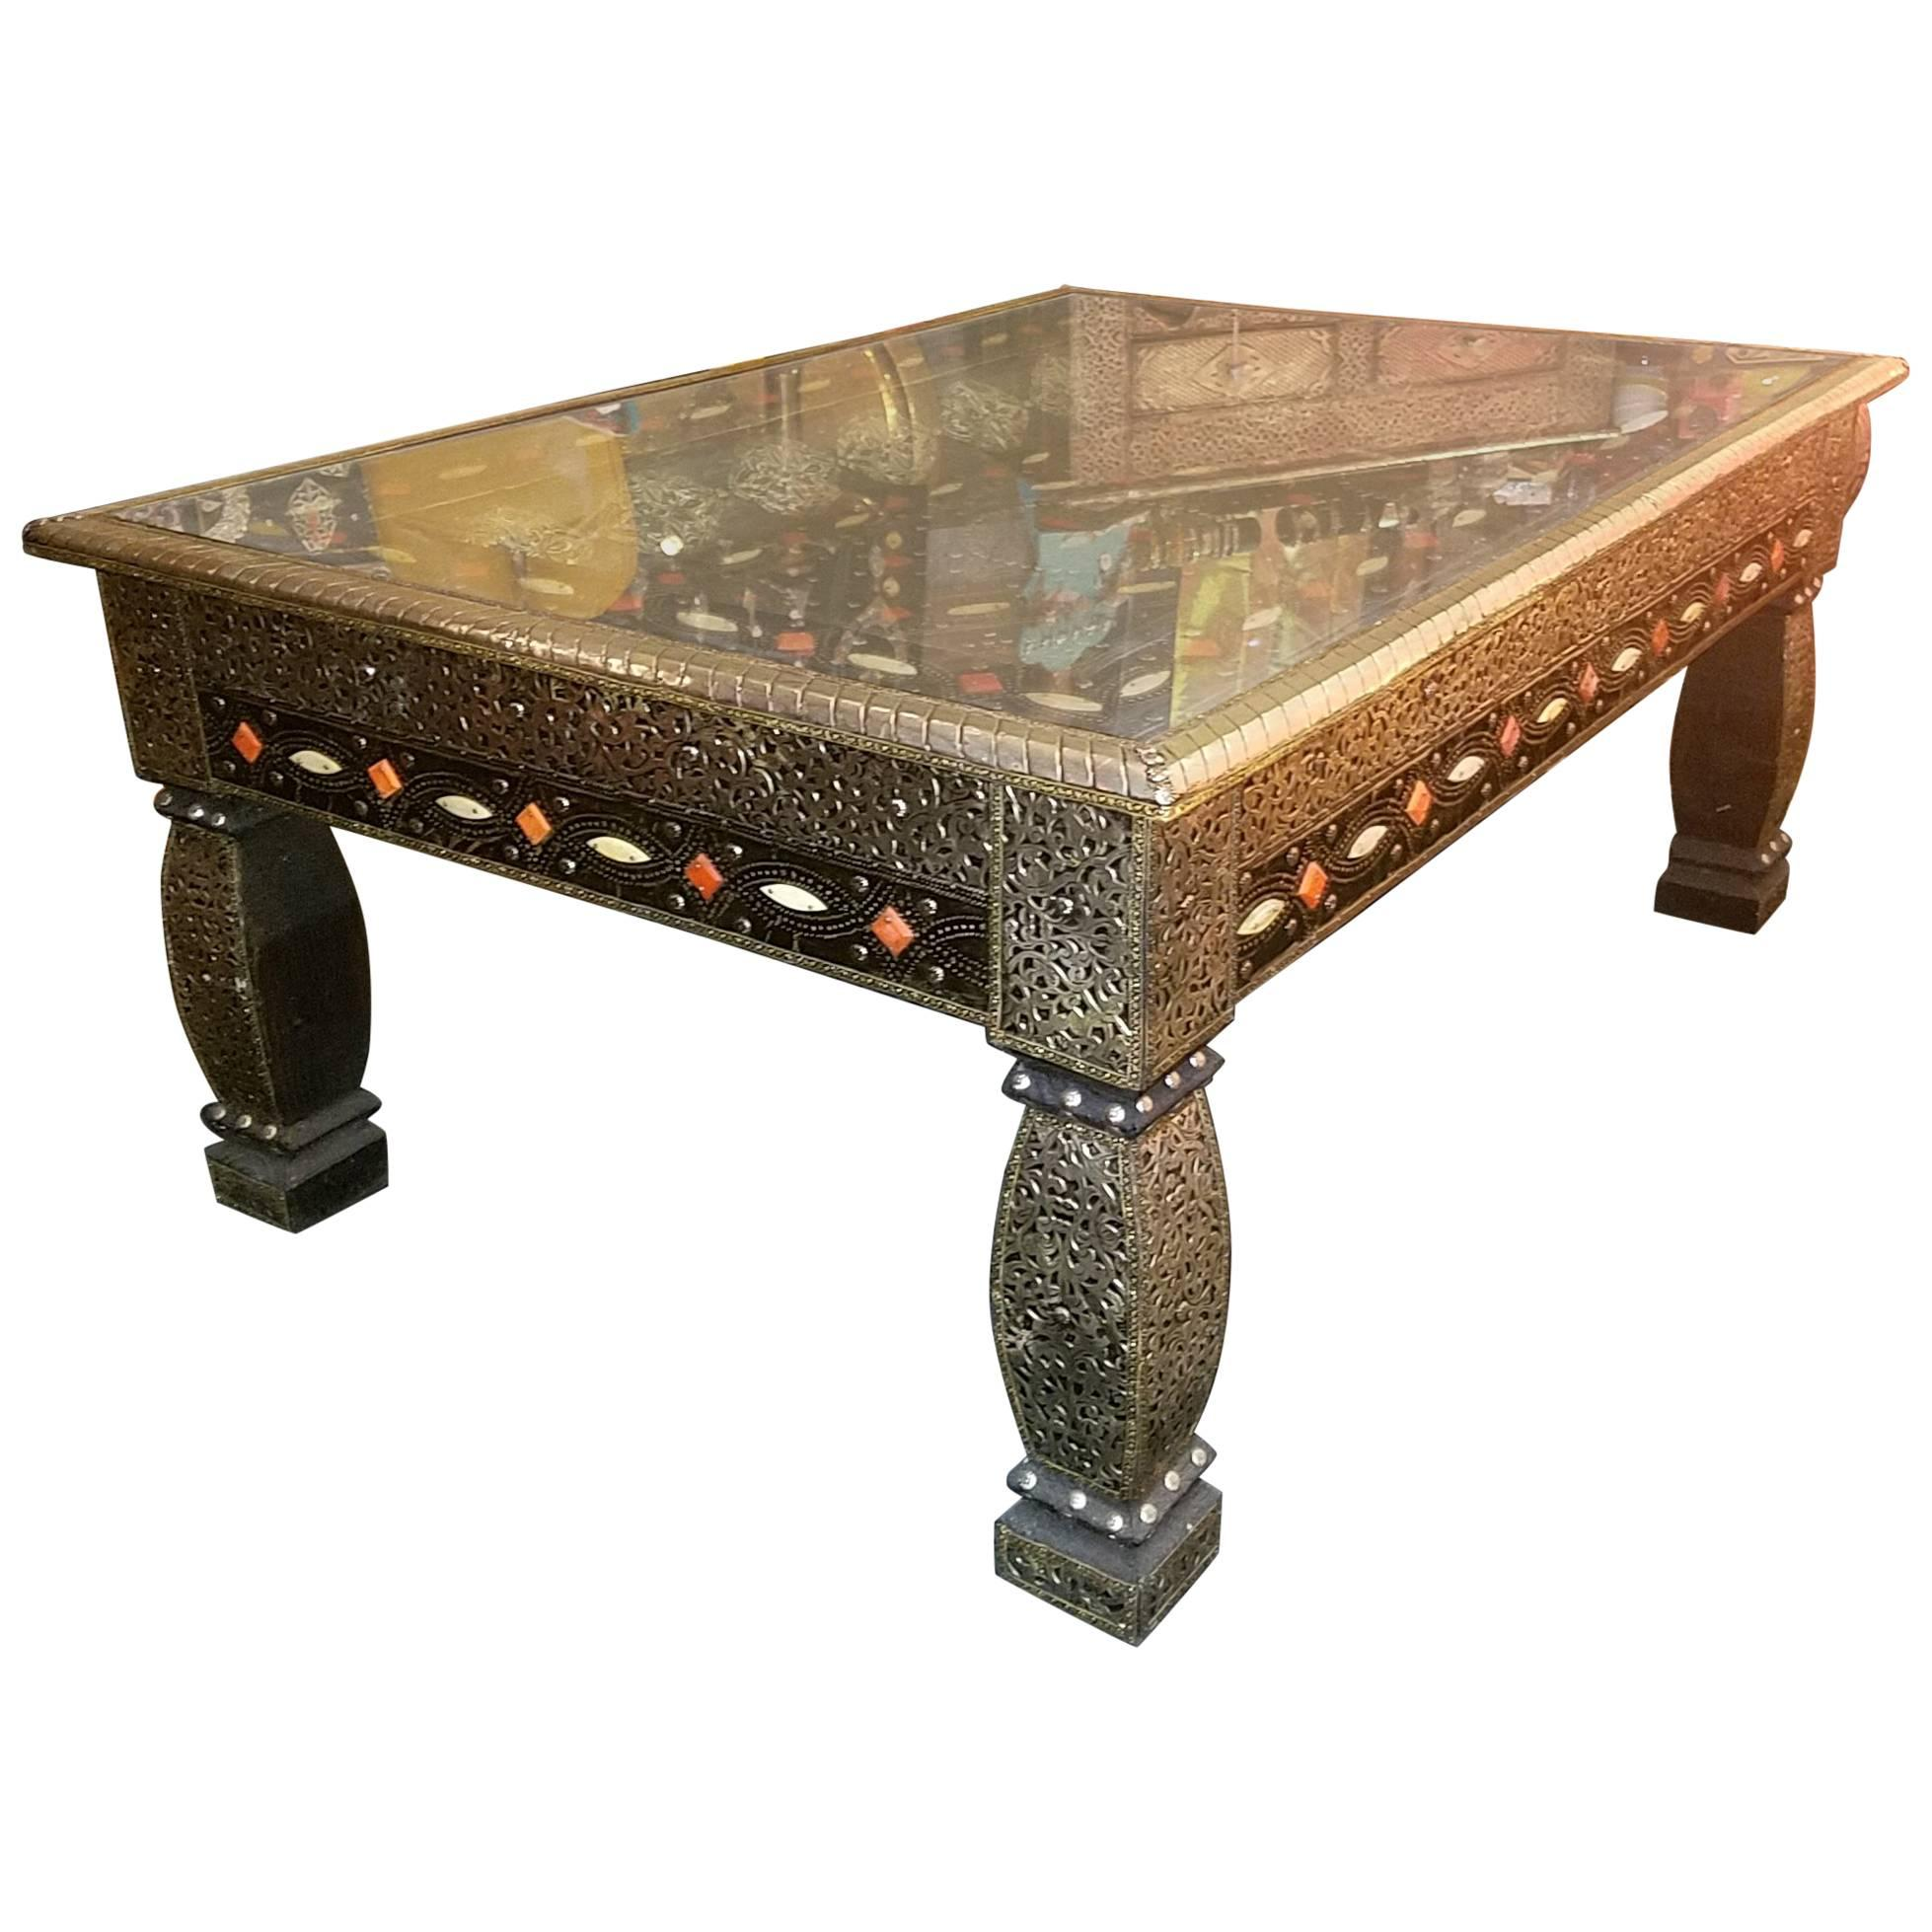 398a13f4176a2 Moroccan Metal Inlaid Coffee Table, Camel Bone Added For Sale at 1stdibs